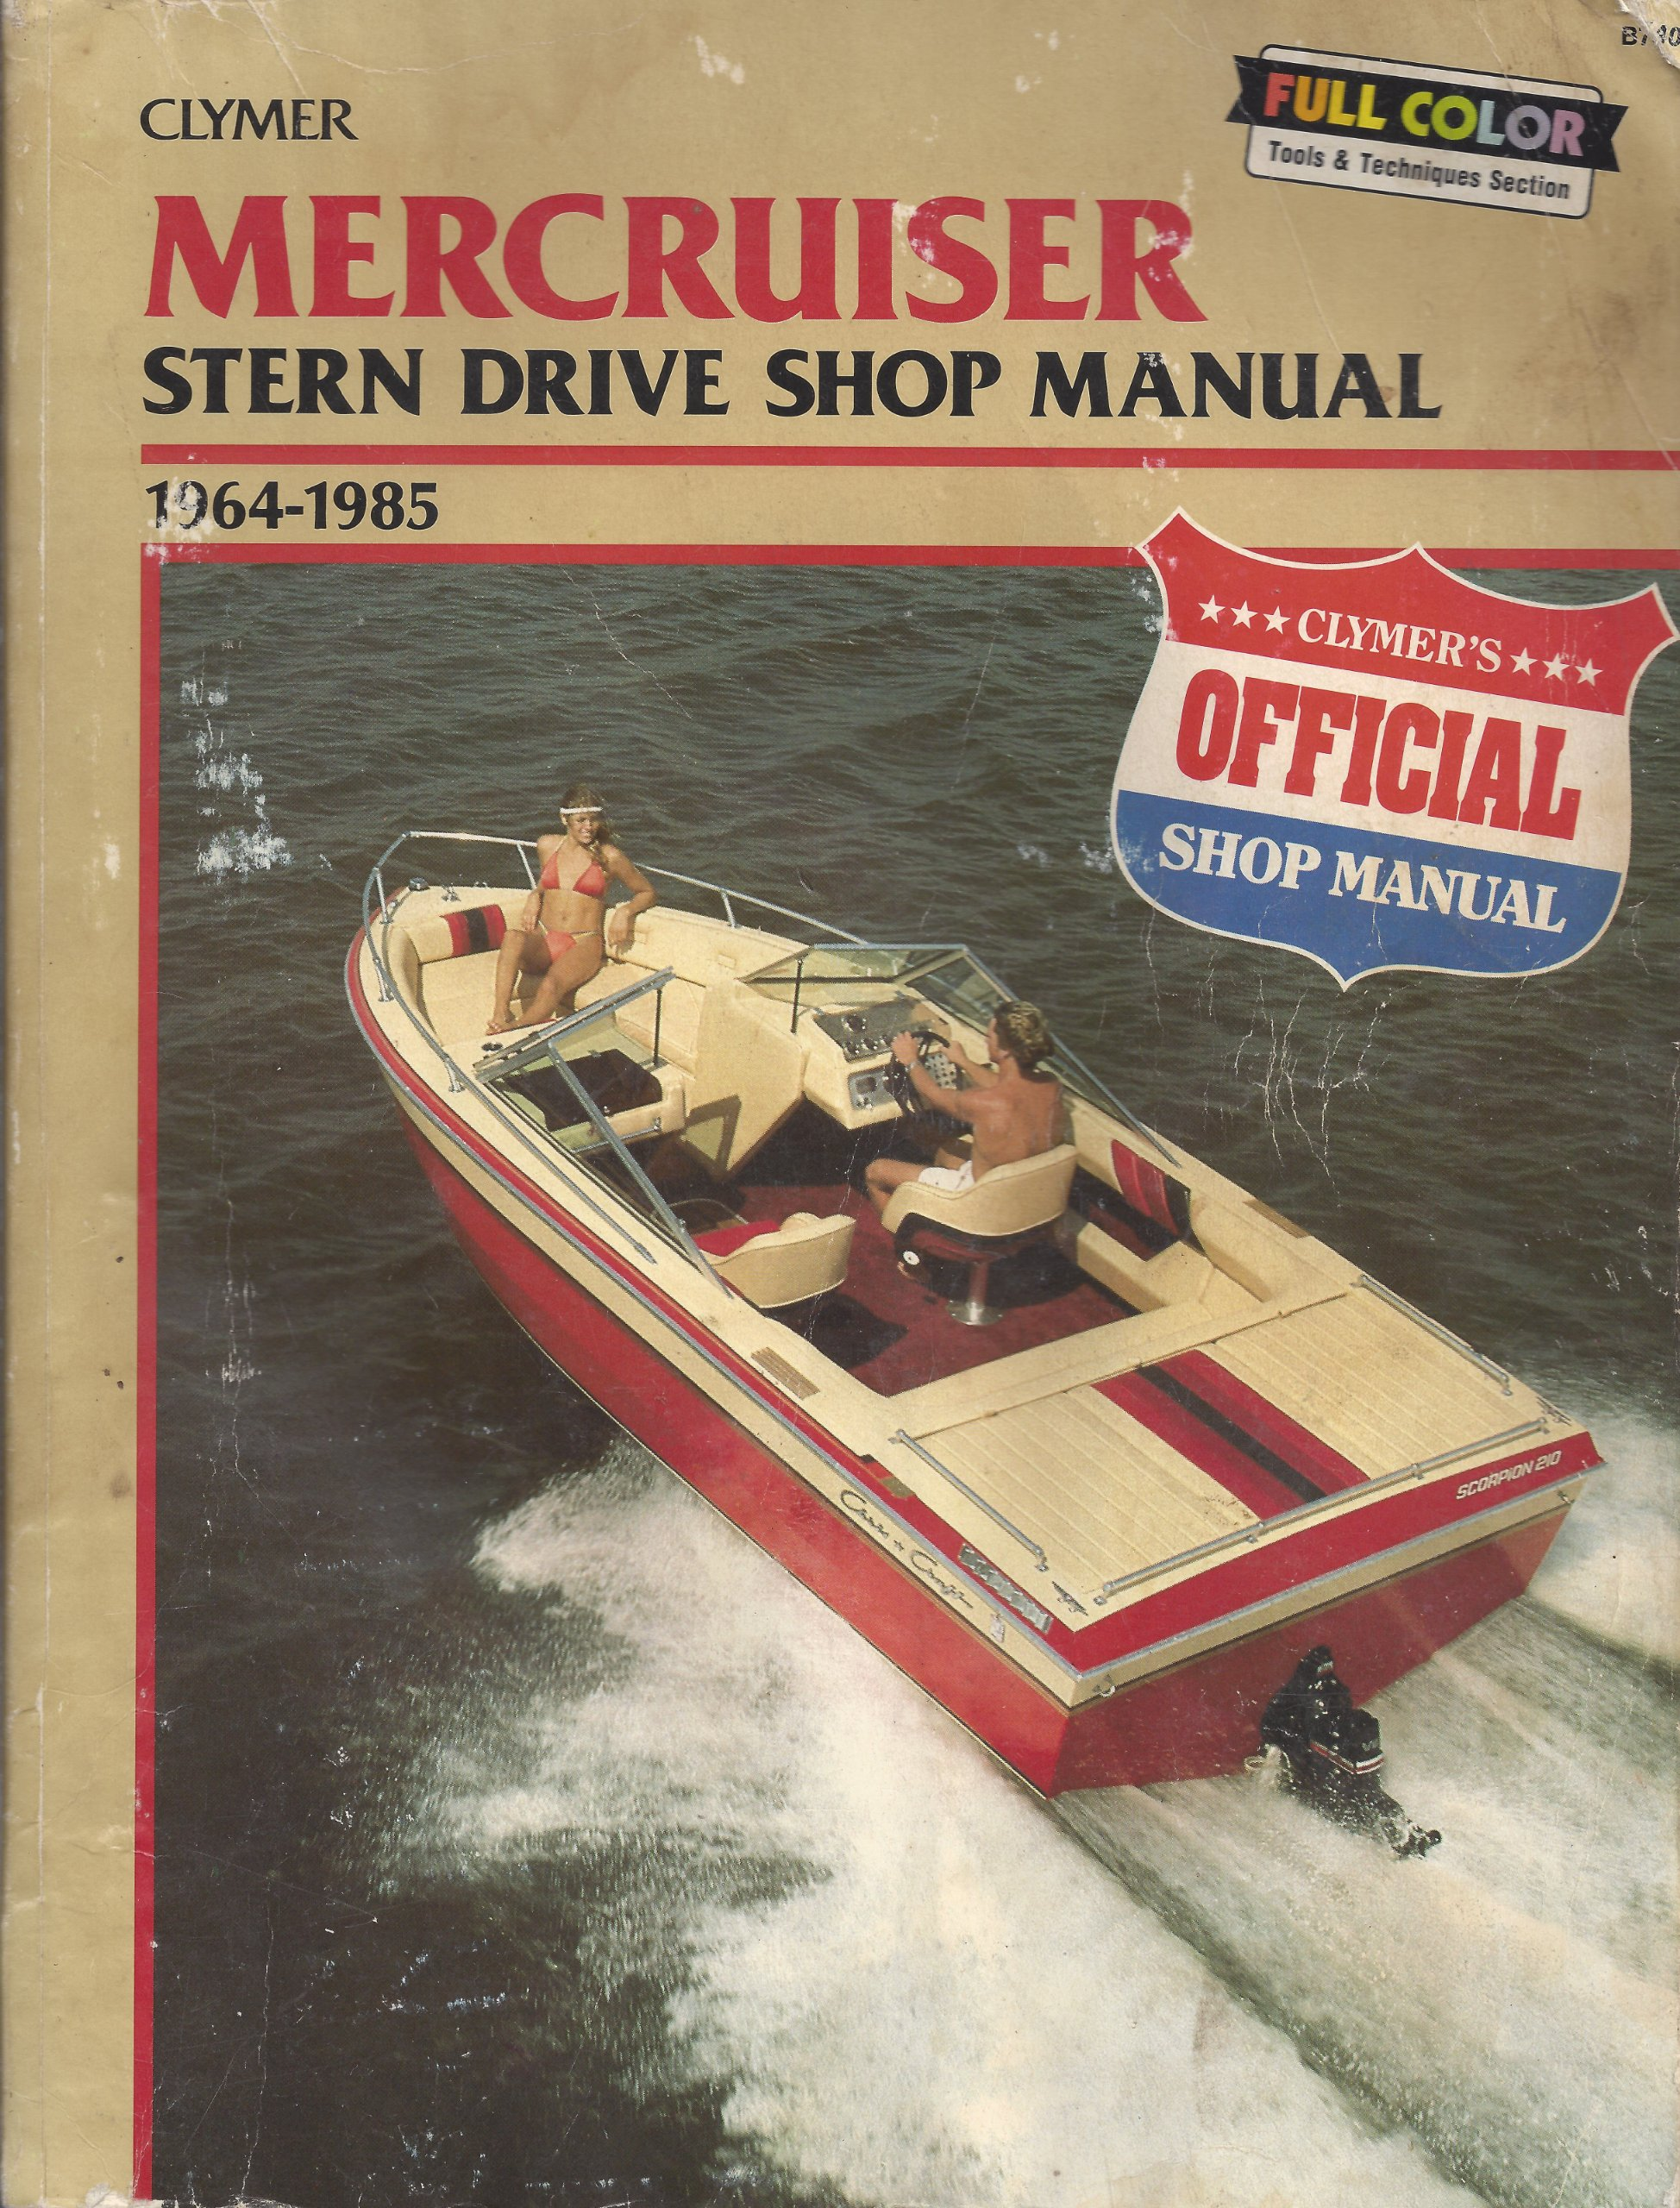 Mercruiser B740 Stern Drive Shop Manual, 1964-85: Includes 1986-87 TR and  TRS Models: Randy Stephens: 9780892873890: Amazon.com: Books